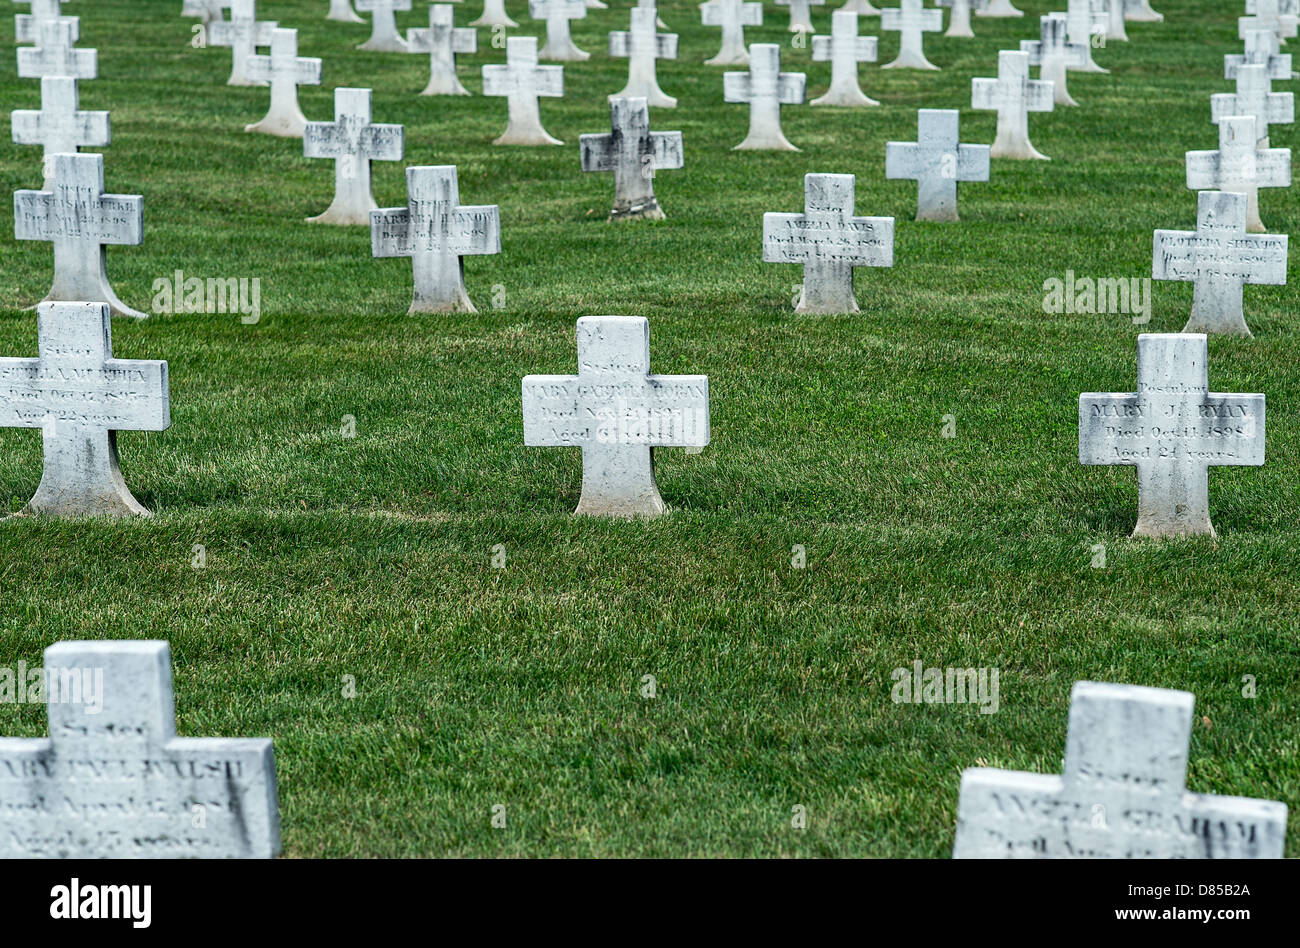 Cemetery for Daughters of Charity religious order of nuns, Elizabeth Seton National Shrine, Emmitsburg, Maryland, - Stock Image